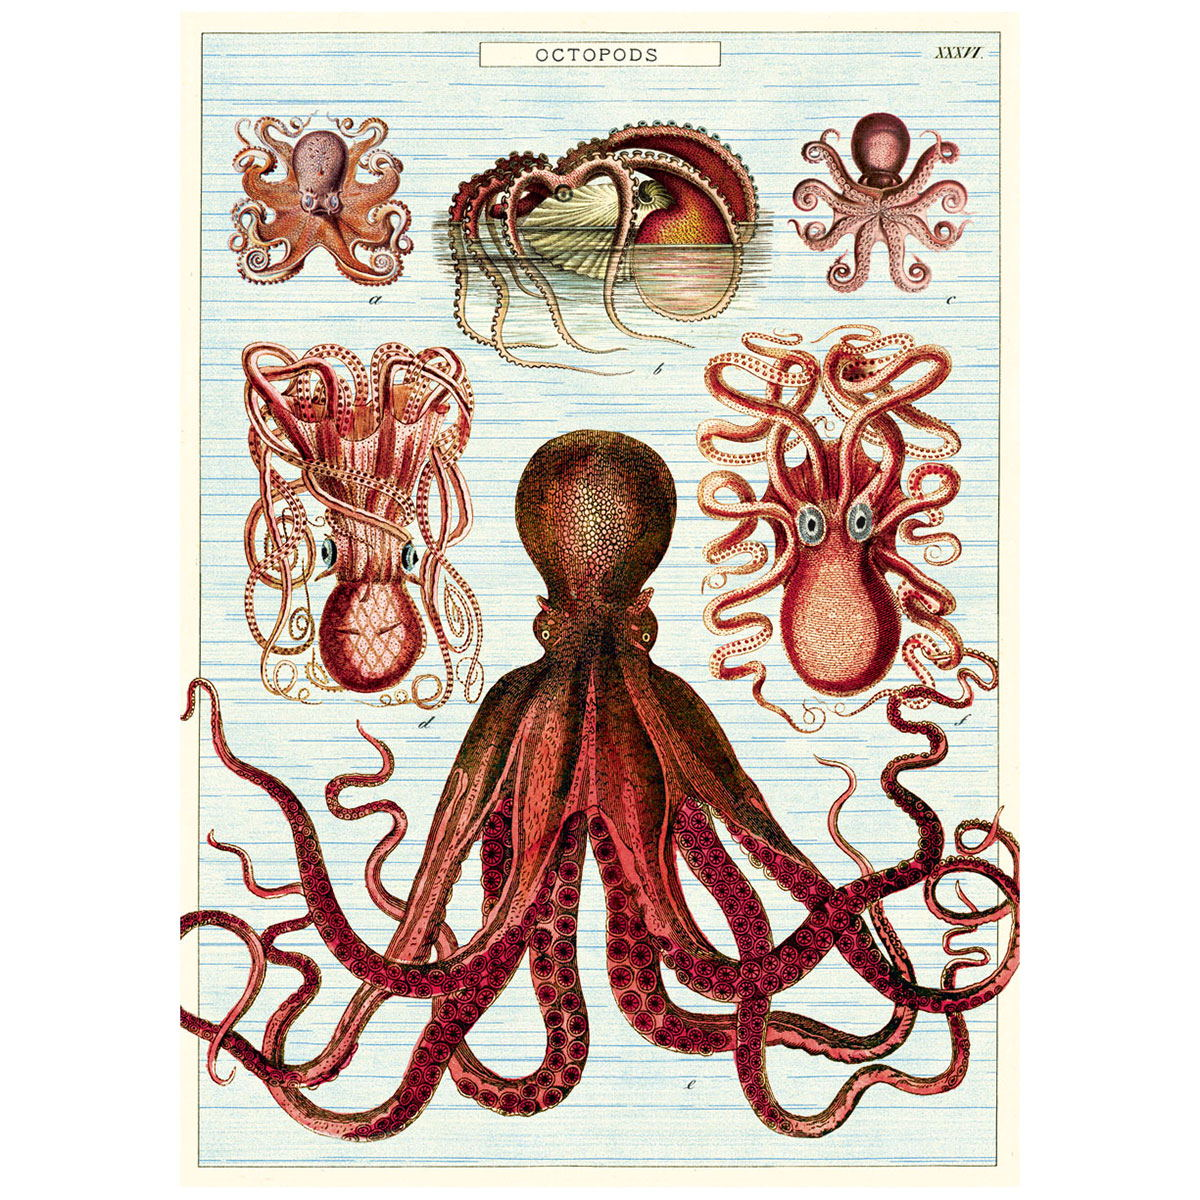 Octopus Octopods Chart Vintage Style Poster | Decorative Paper ...